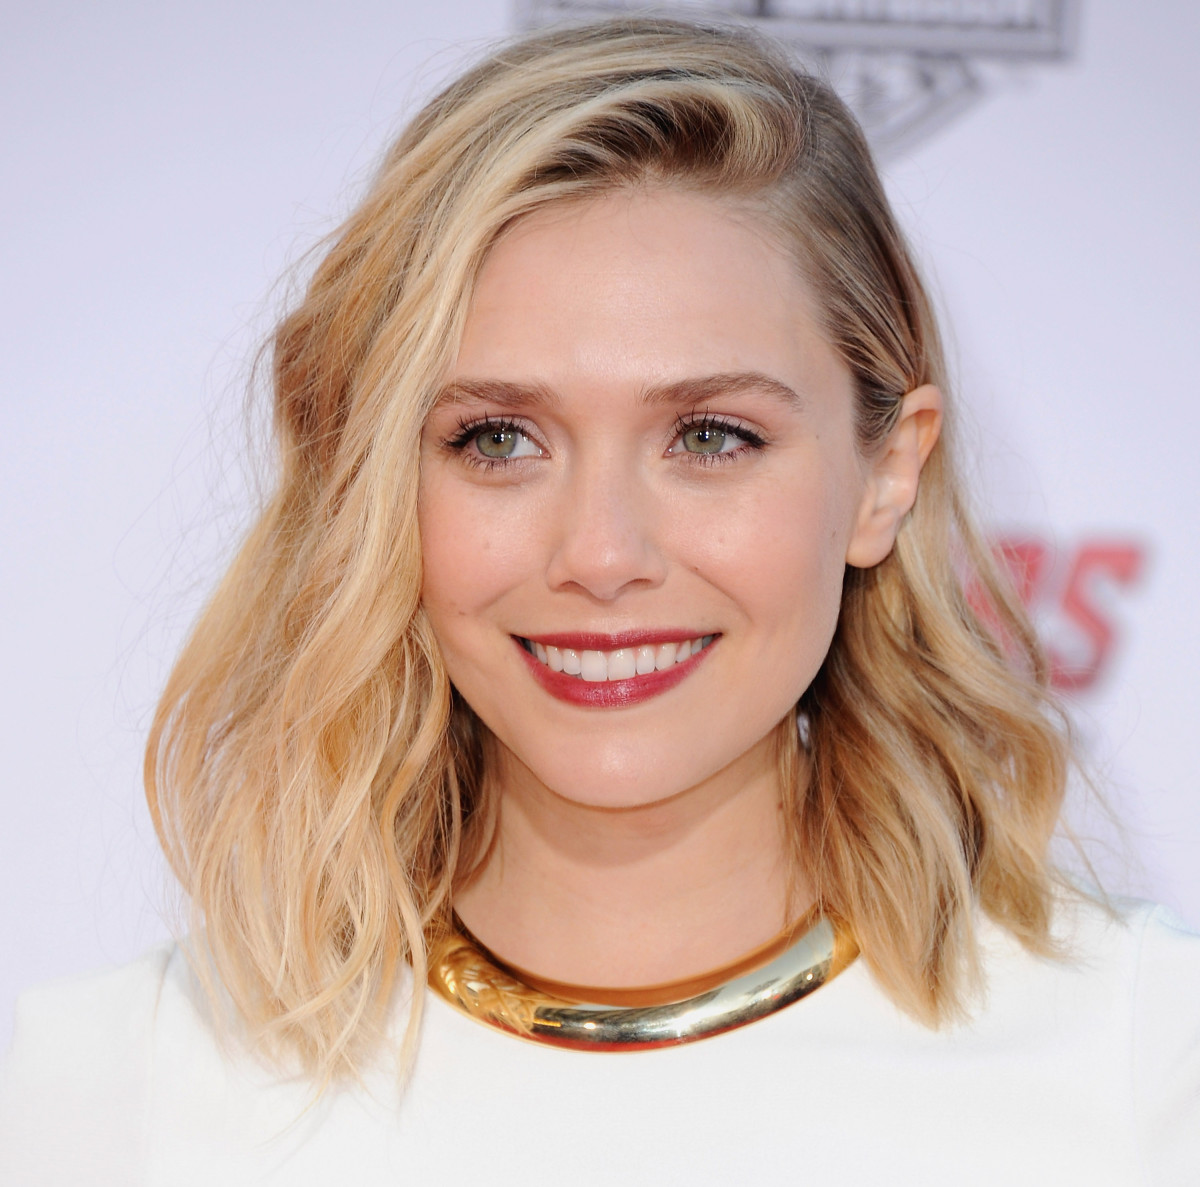 hairstyle-for-thanksgiving-fall-autumn-blonde-lob-deep-side-part.jpg